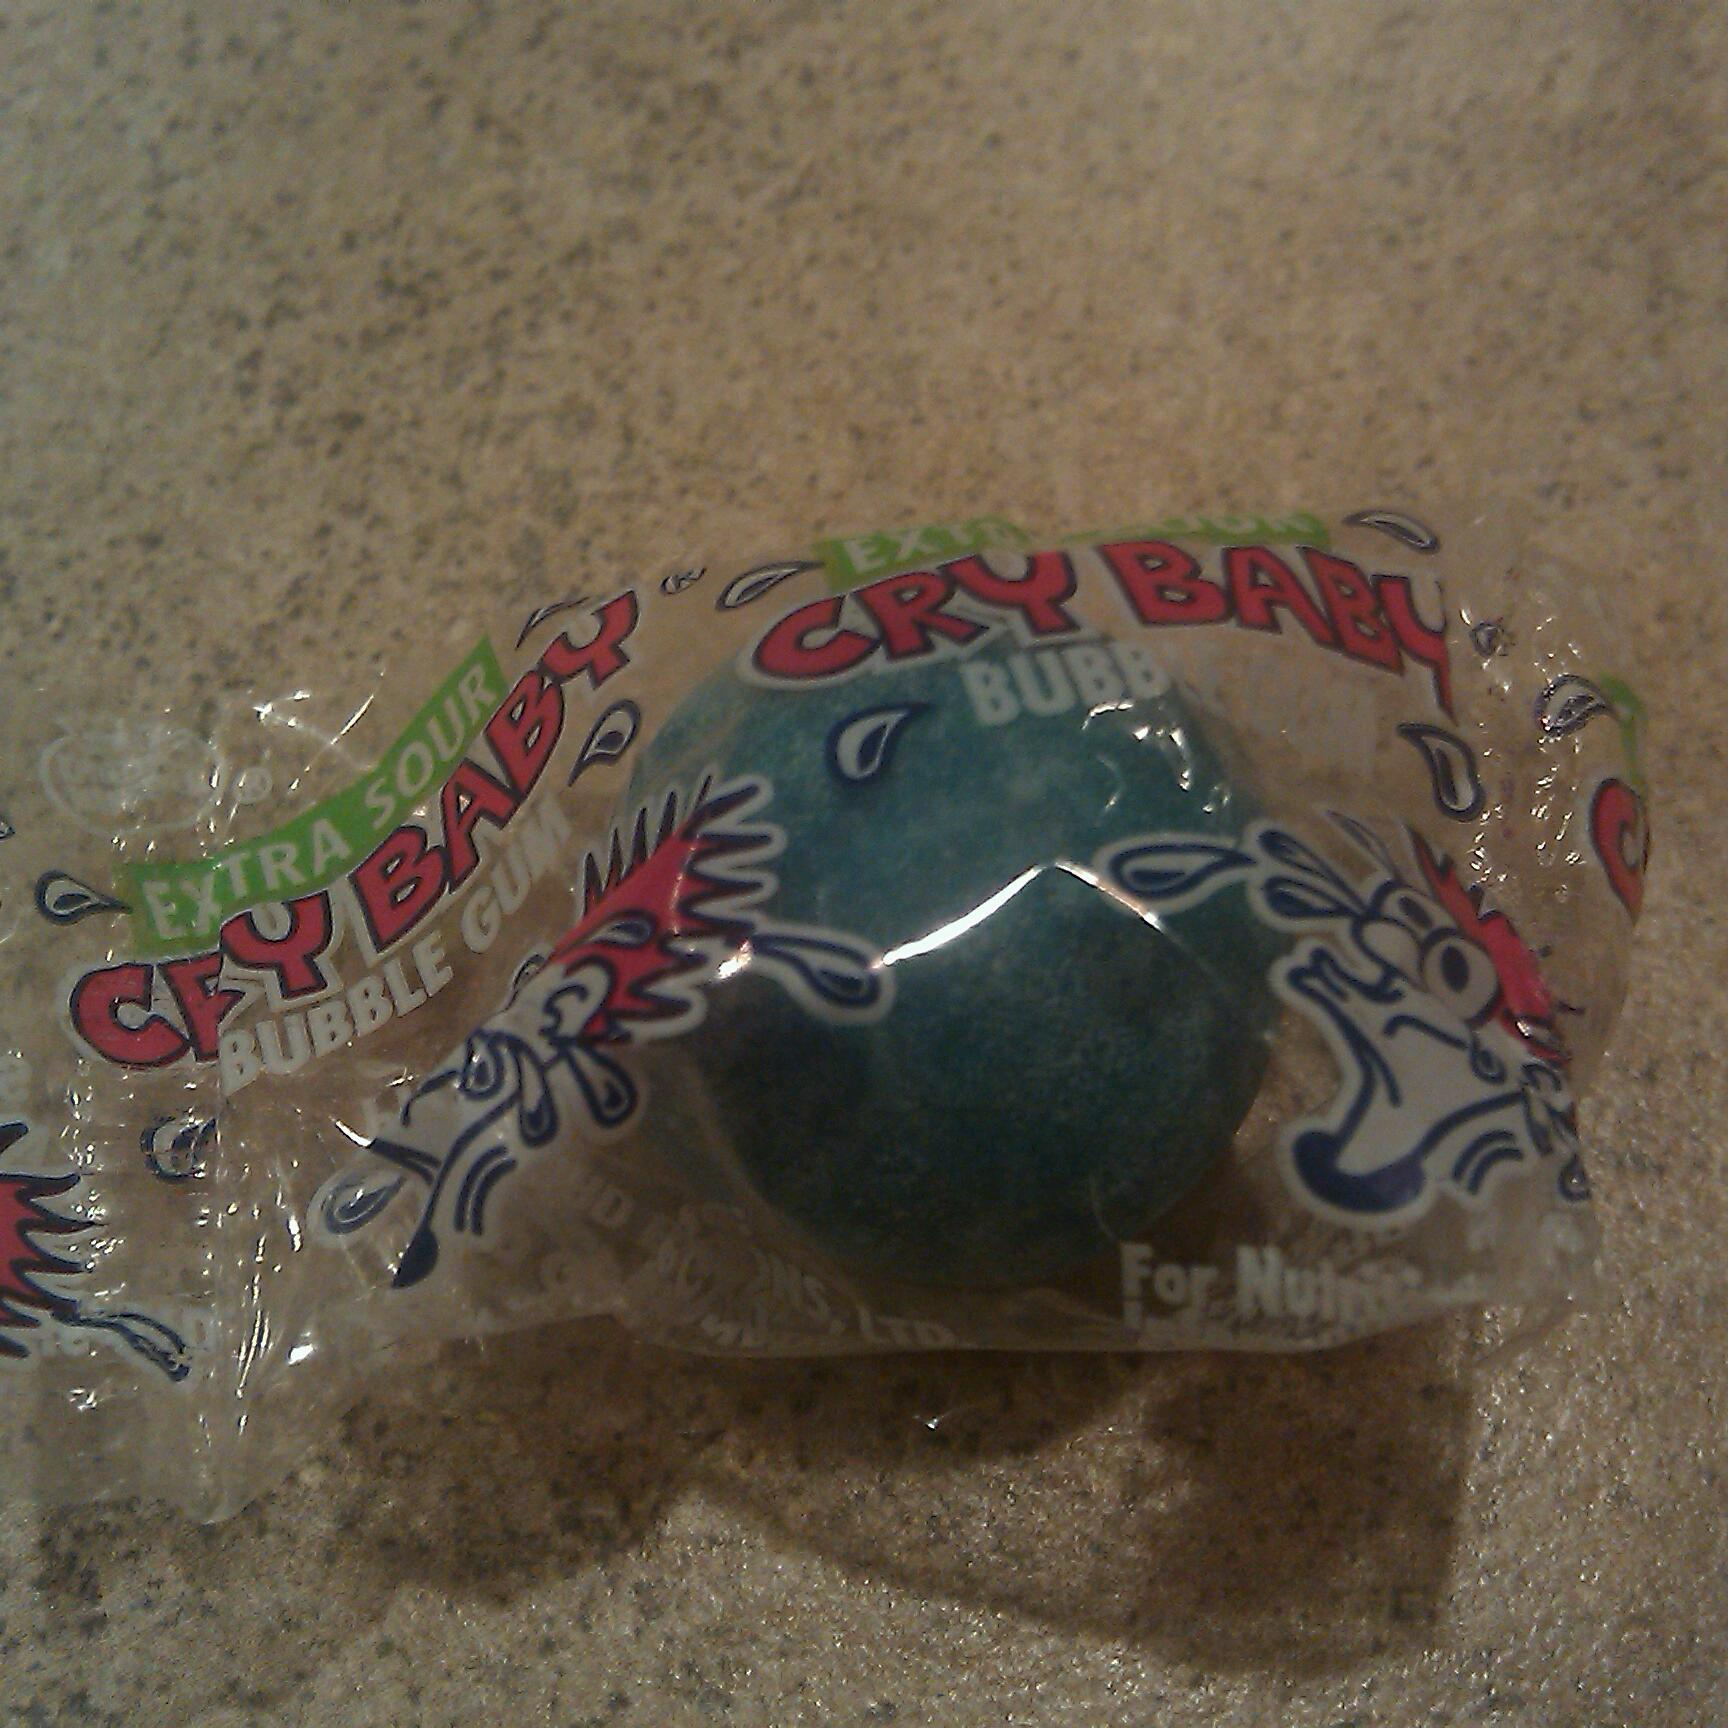 AZ :: crybaby sour gum ball so sour it hurts really bad